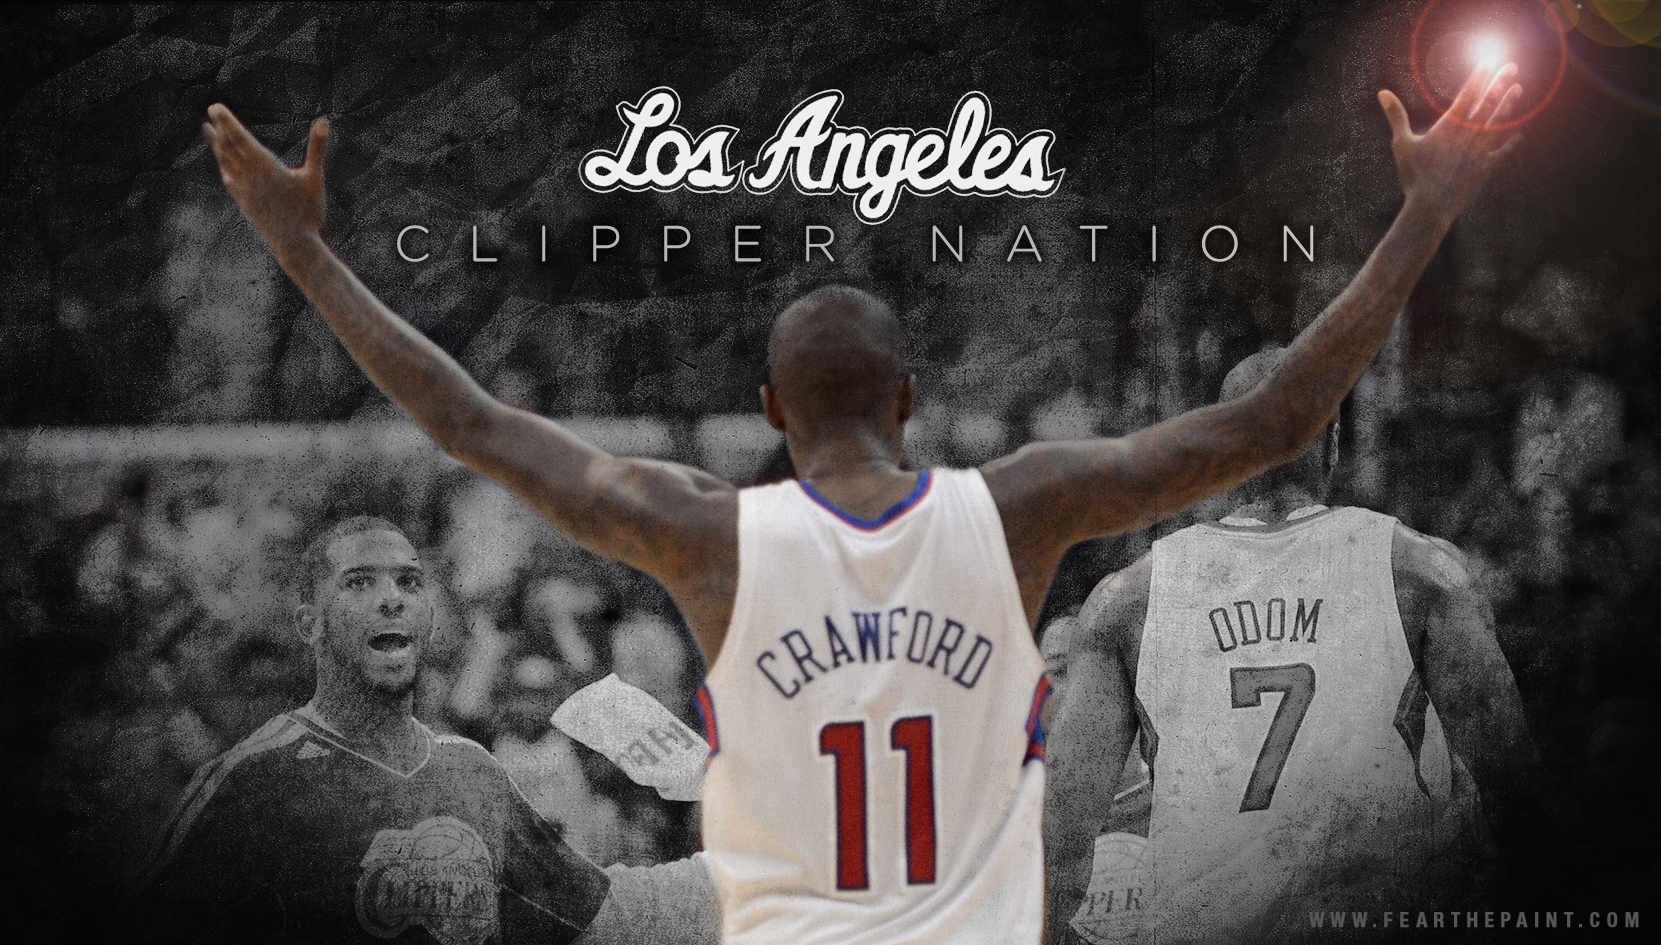 Jamal Crawford Wallpapers Clippers - 1153.0KB